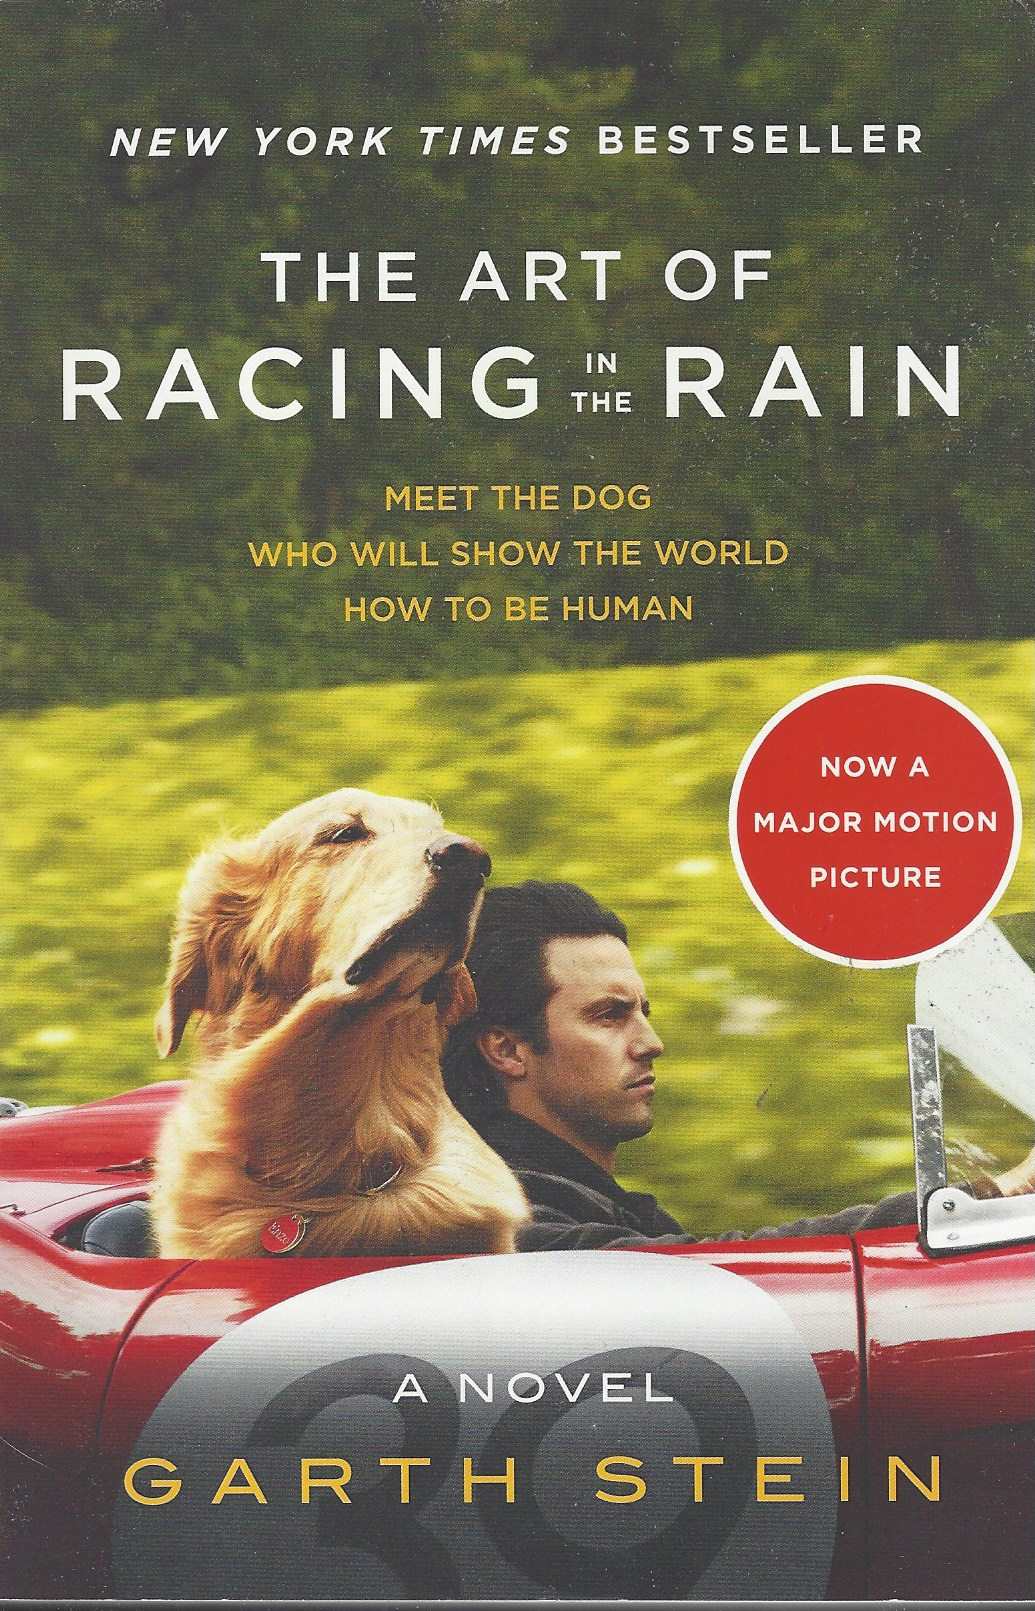 Image for THE ART OF RACING IN THE RAIN [MOVIE TIE-IN EDITION]